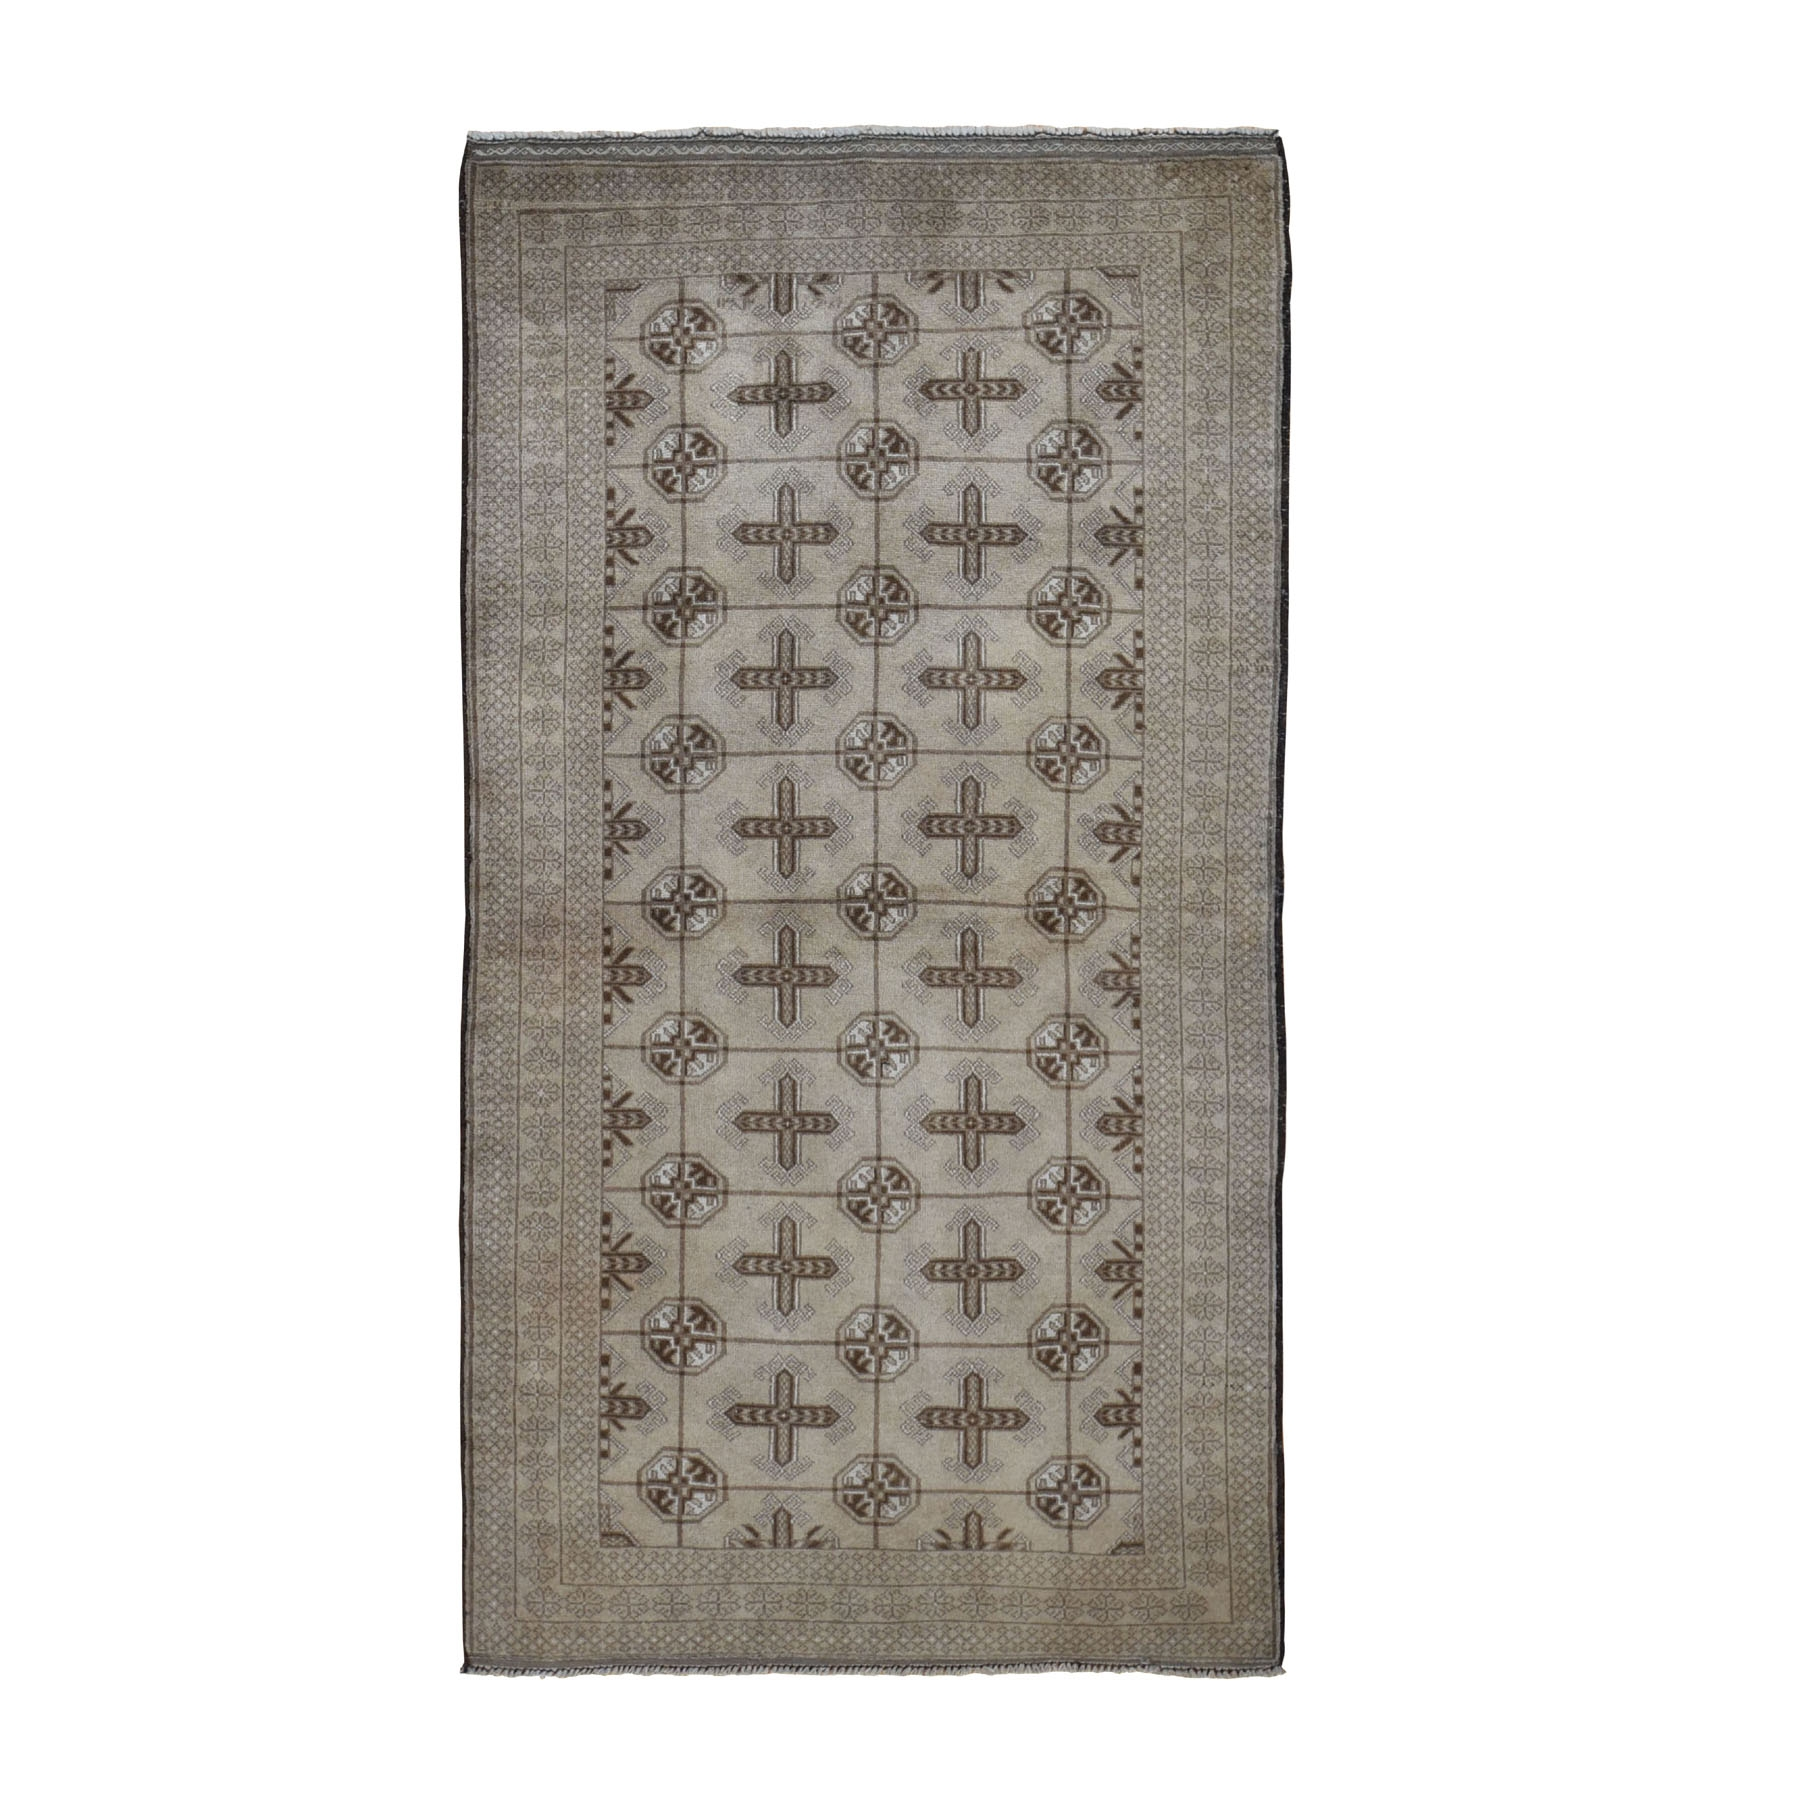 Nomadic And Village Collection Hand Knotted Brown Rug No: 0198068